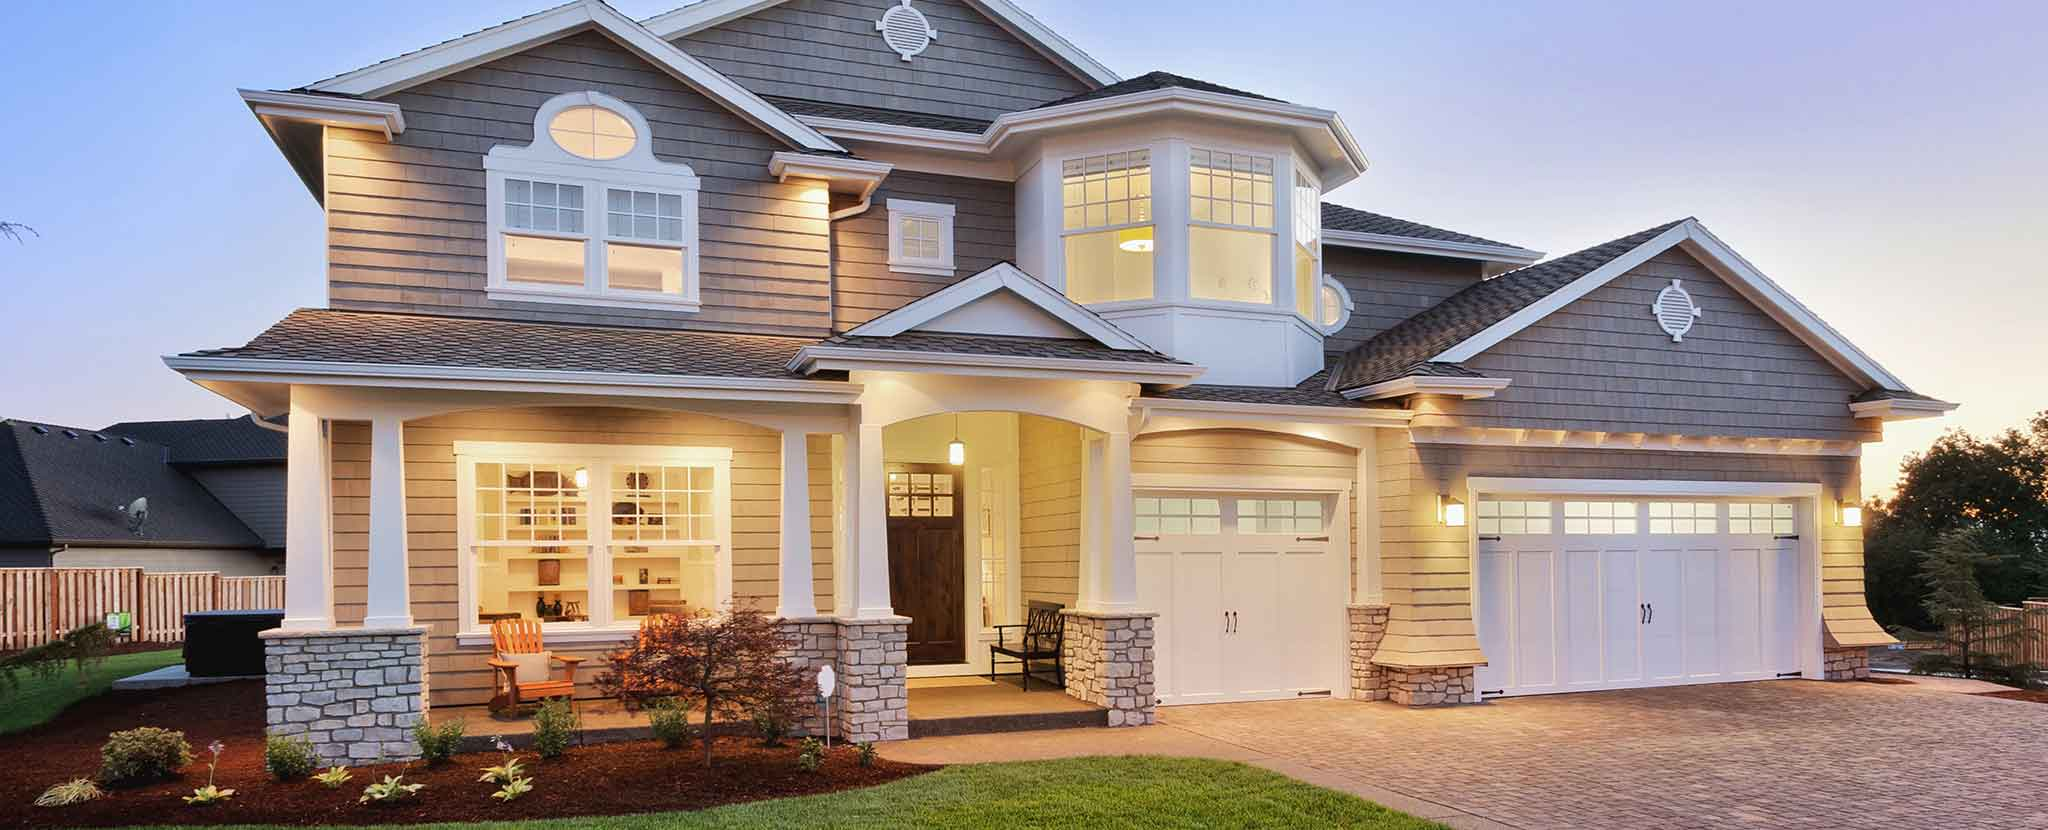 5 Things to Do Before Listing Your House | Lifeyet